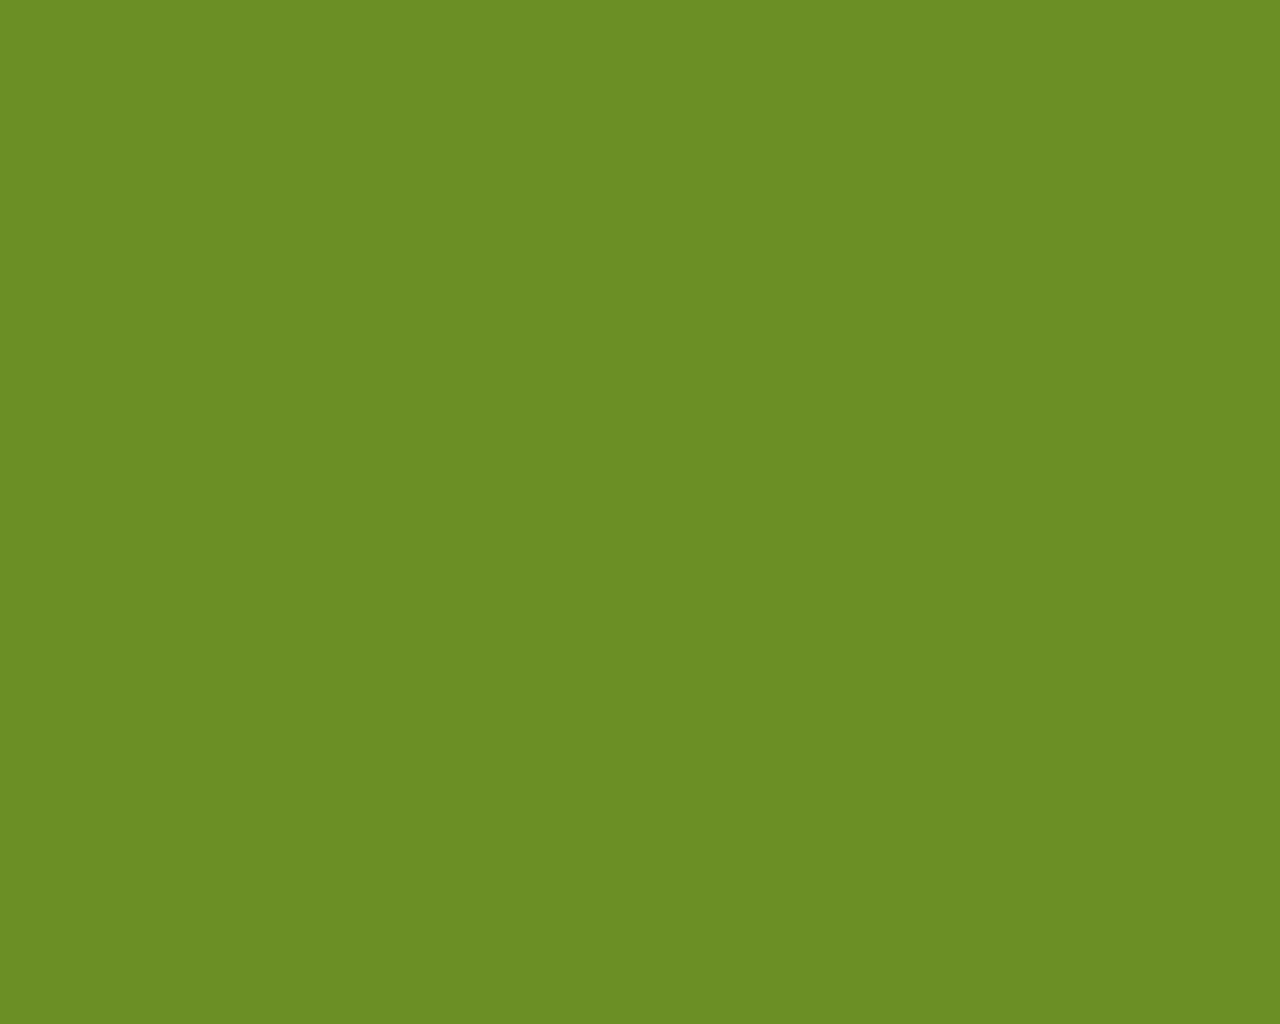 1280x1024 Olive Drab Number Three Solid Color Background